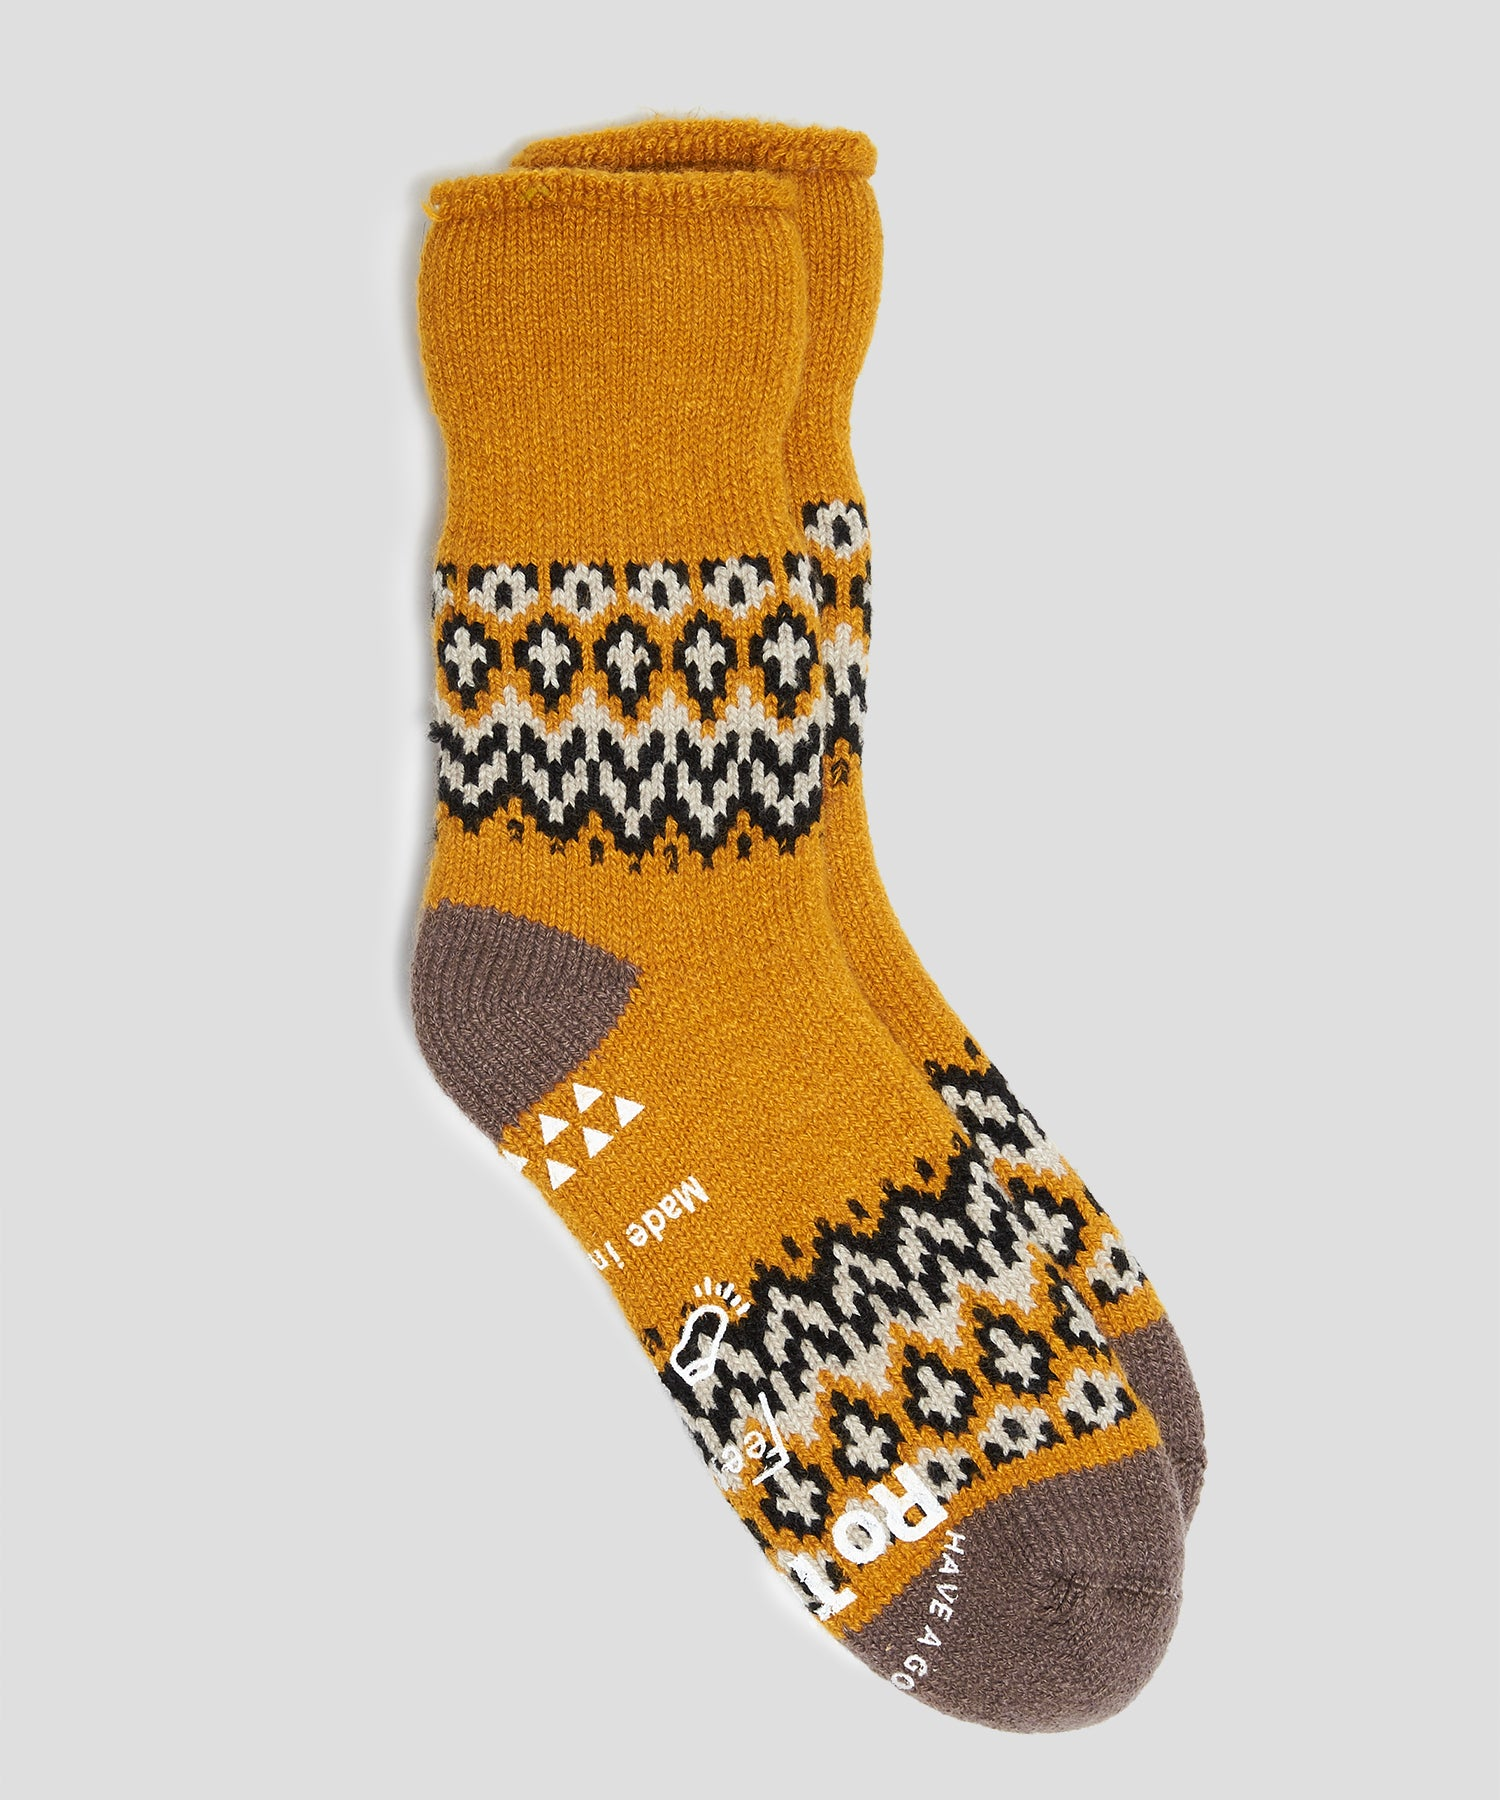 RoToTo Comfy Nordic Room Socks in Yellow